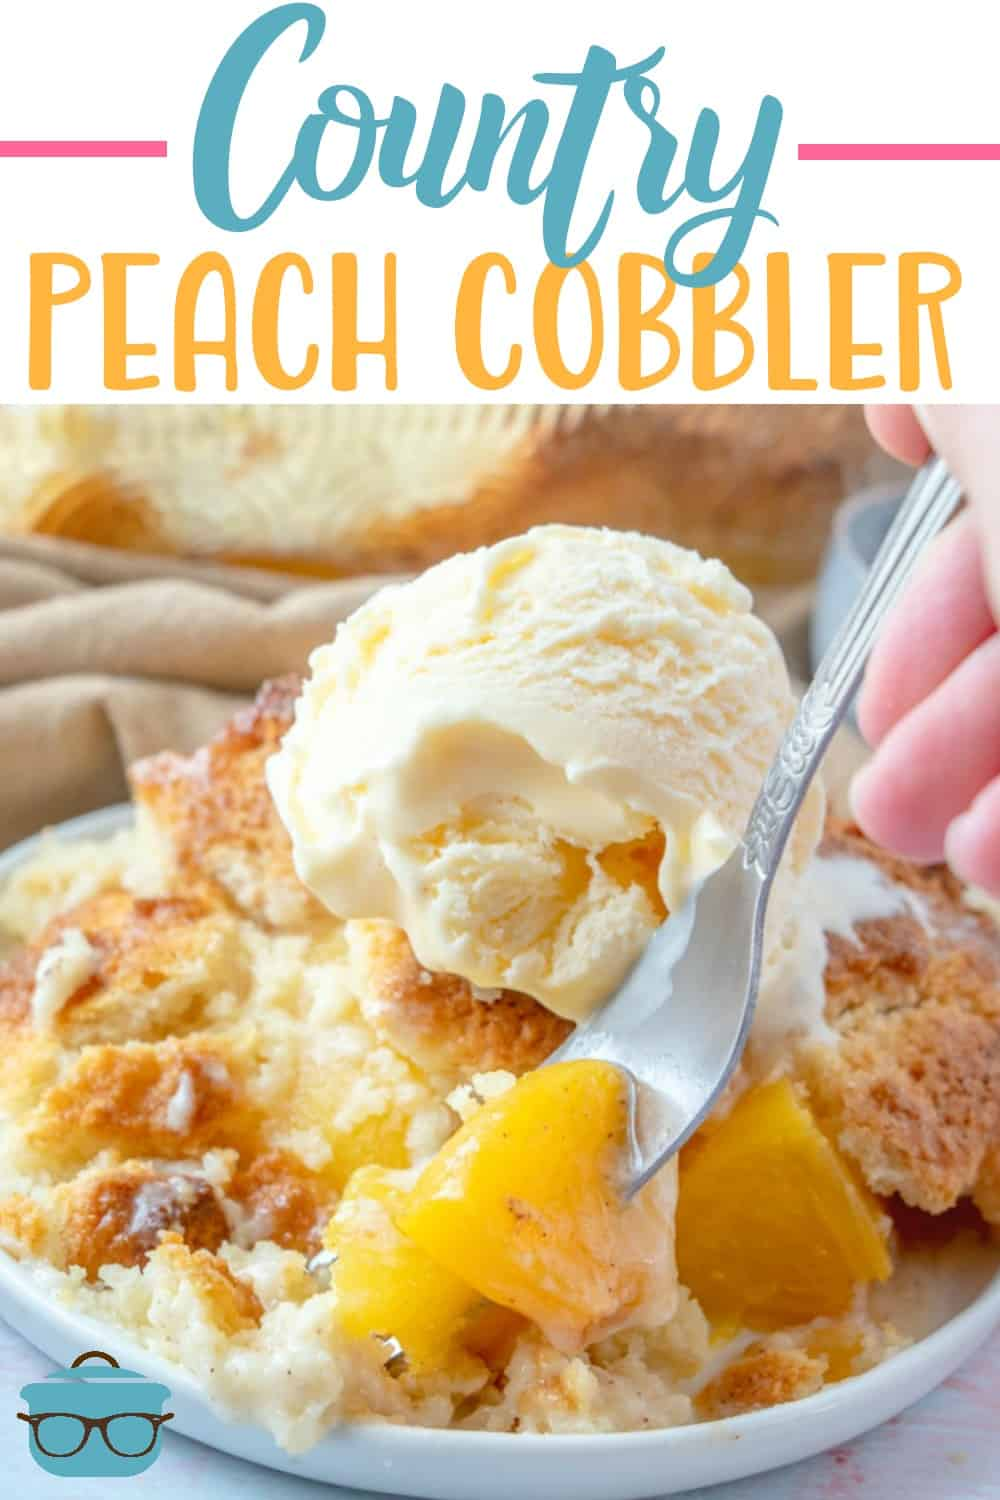 serving of peach cobbler being scooped up with a fork.